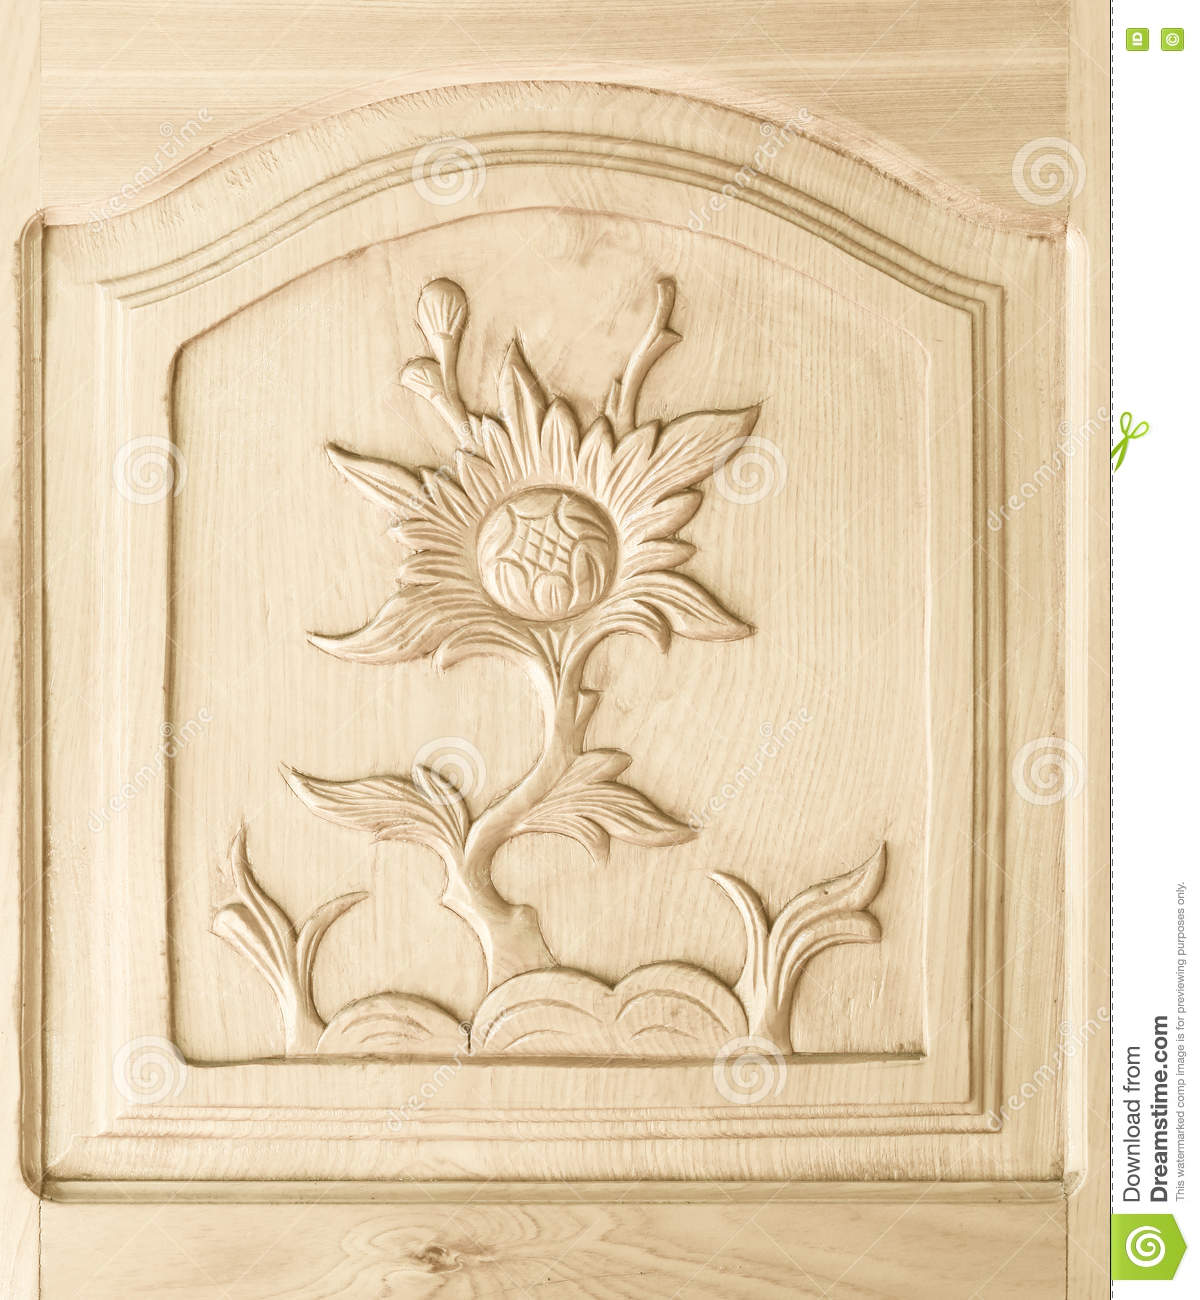 Carved of flower pattern on wooden door stock image image of board